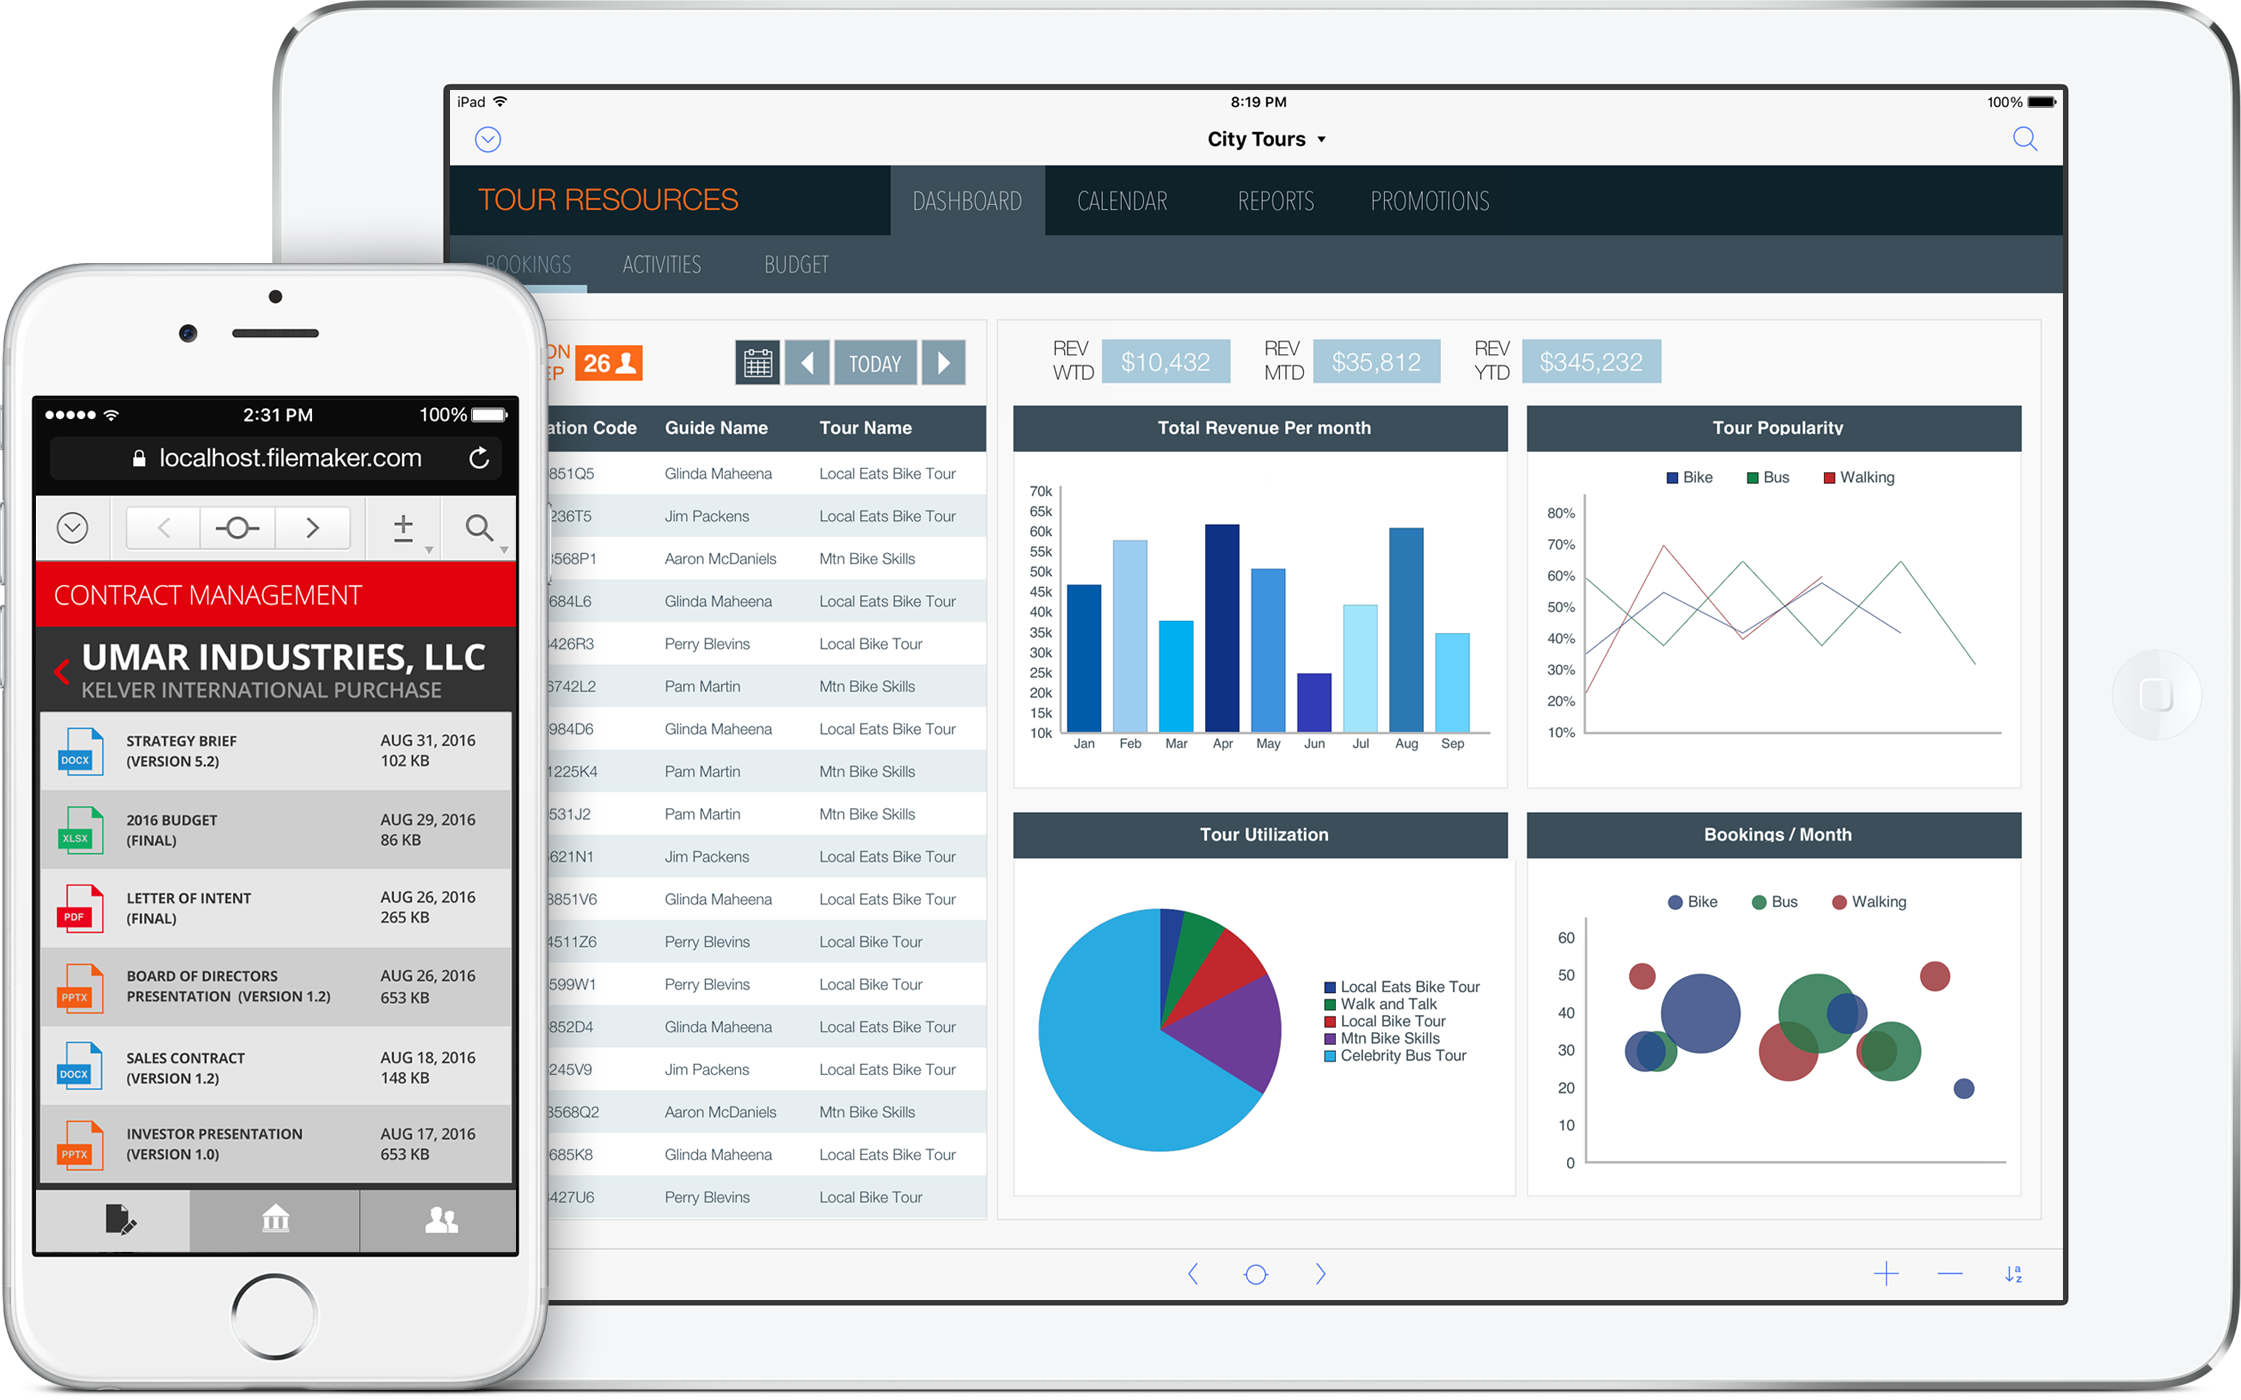 Filemaker Mobility